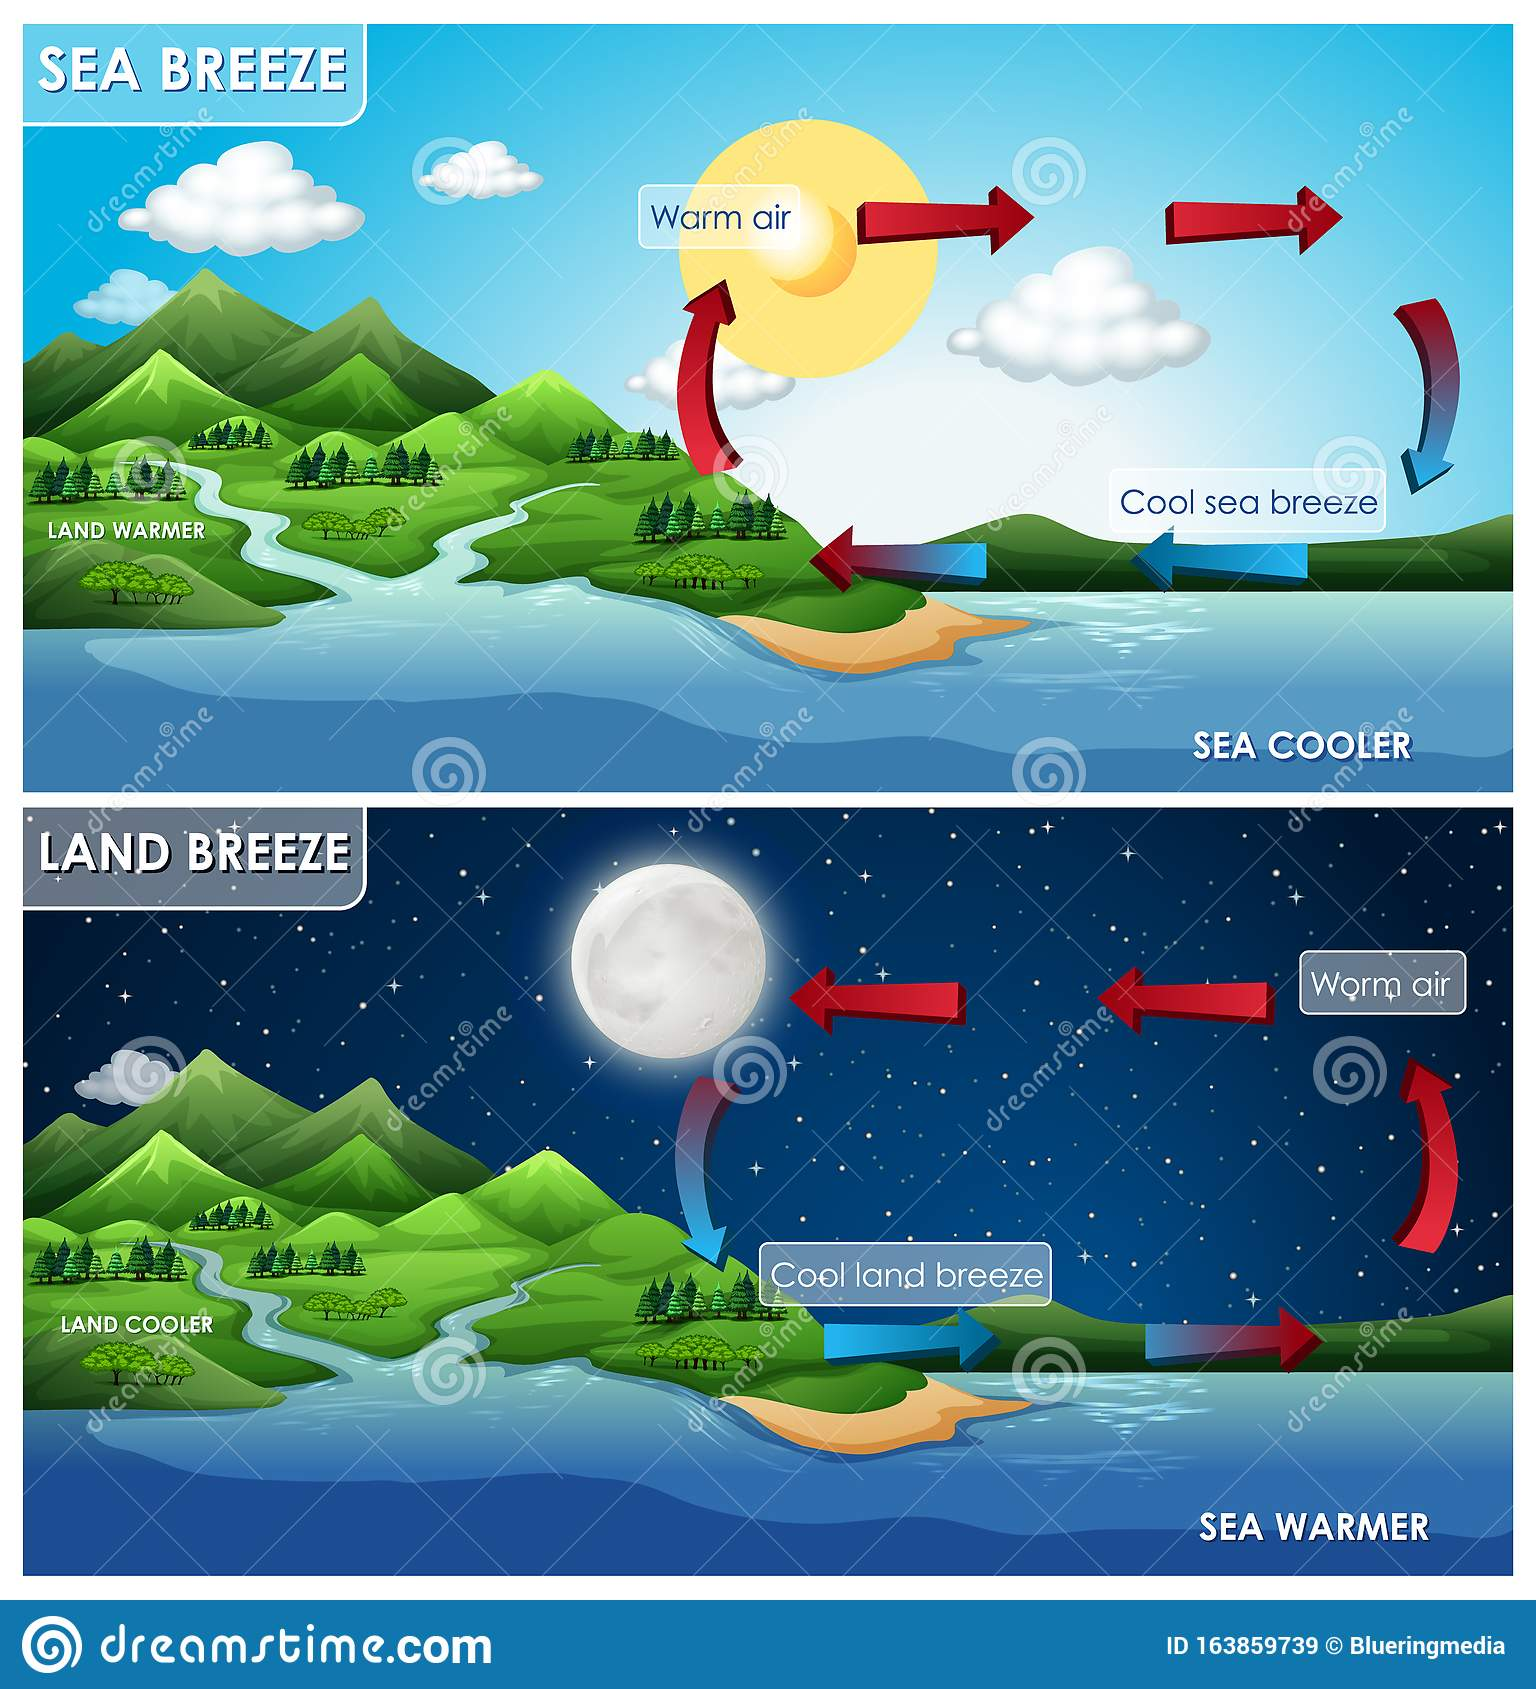 Science Poster Design For Land And Sea Breeze Stock